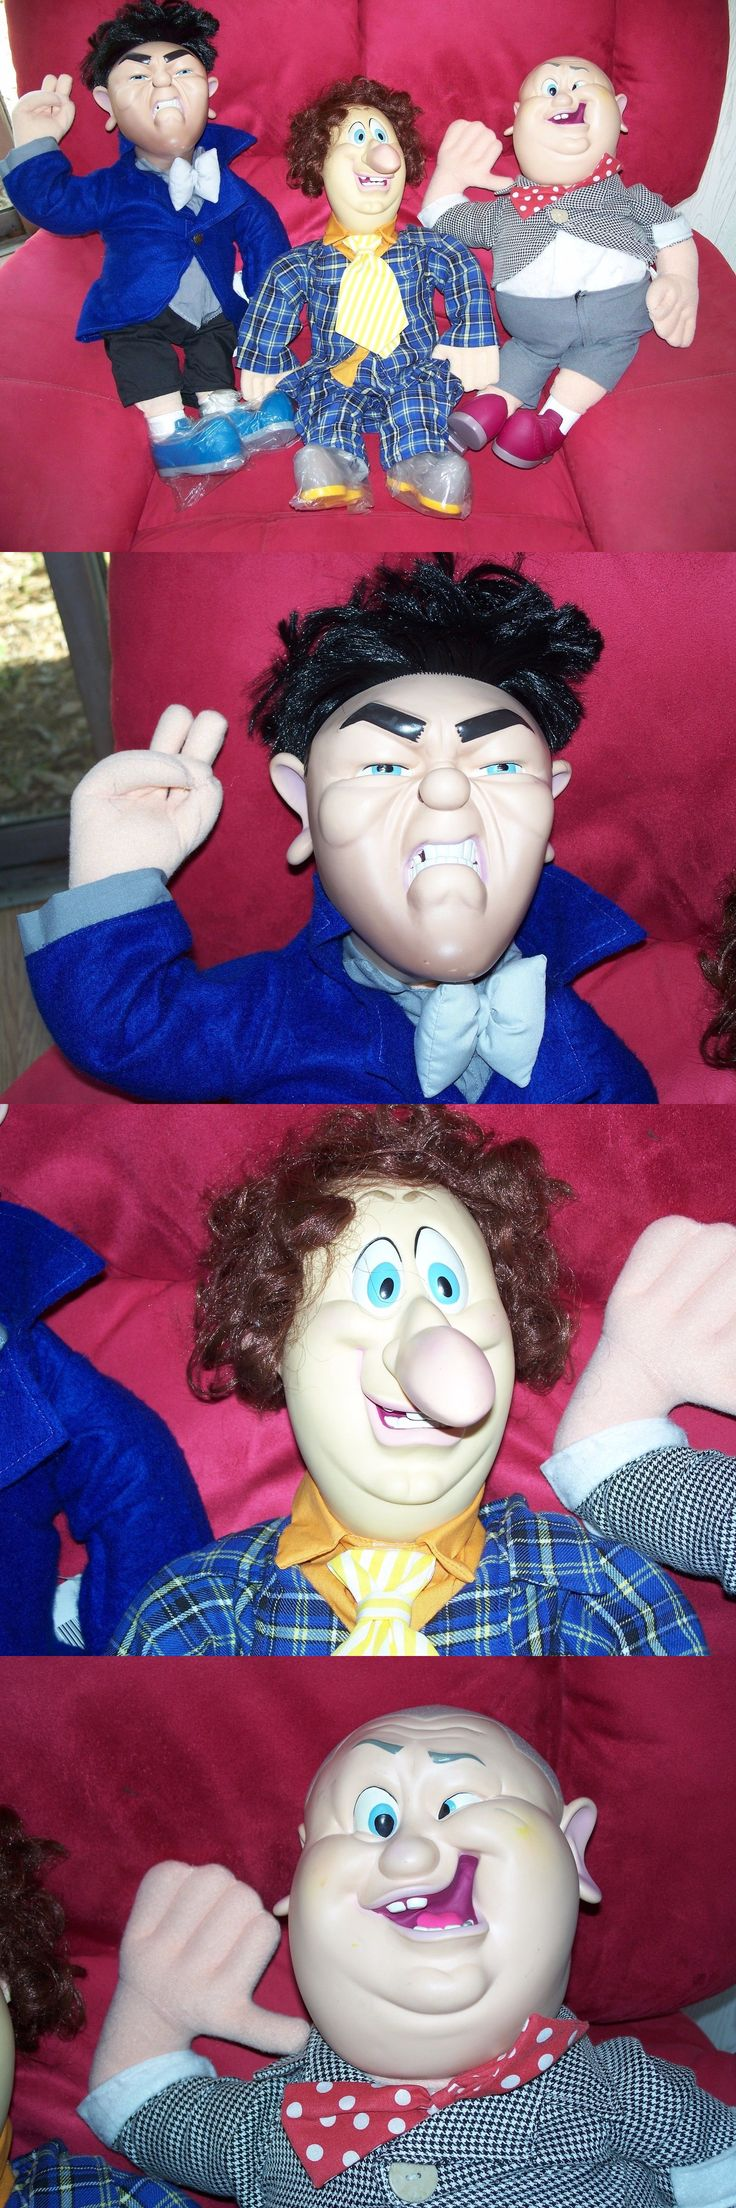 Three Stooges 20921: Larry Curly And Moe The Three Stooges Spumco Comedy Doll 22 Inch 1996 Tag -> BUY IT NOW ONLY: $159.99 on eBay!